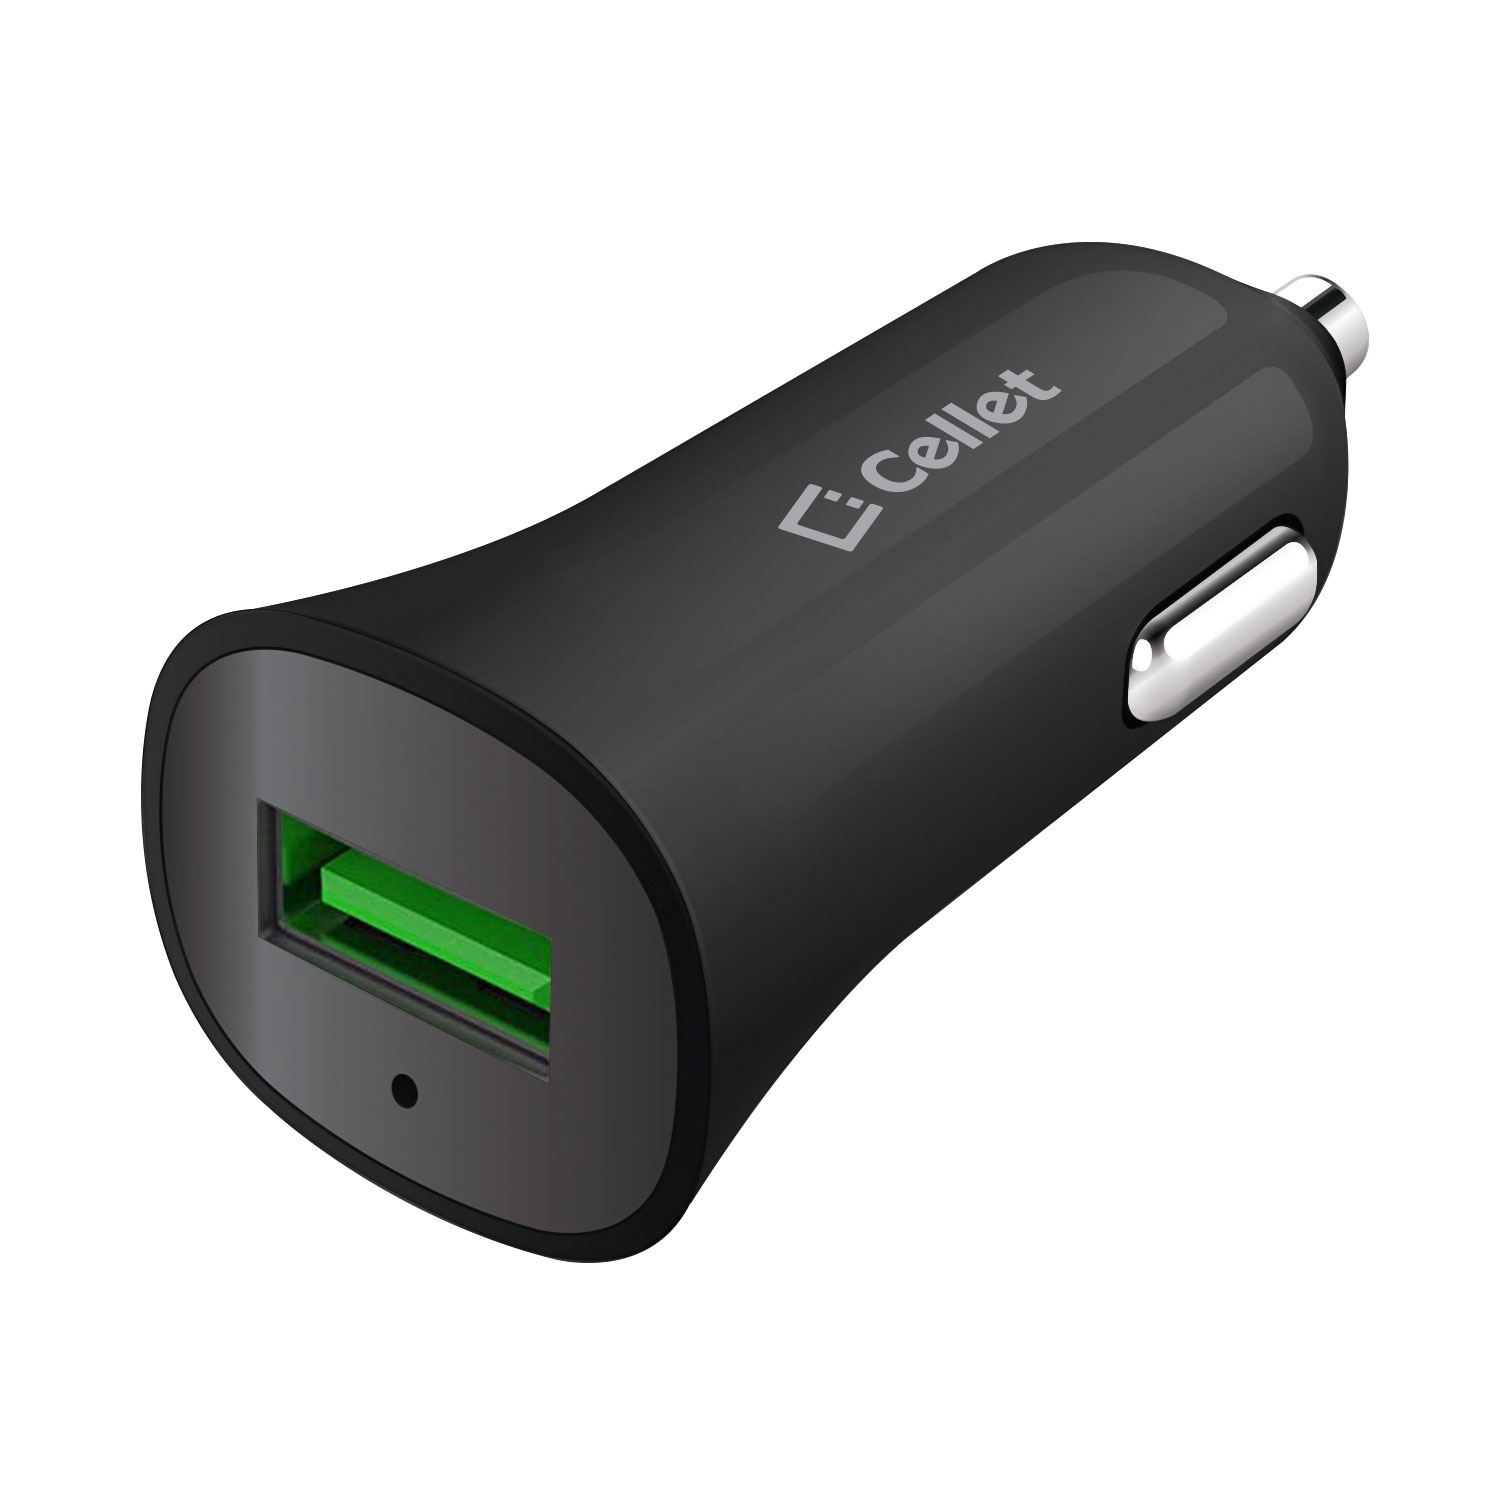 Huawei Ascend Y Car Charger Quick Charge 3.0 Black 3.3ft